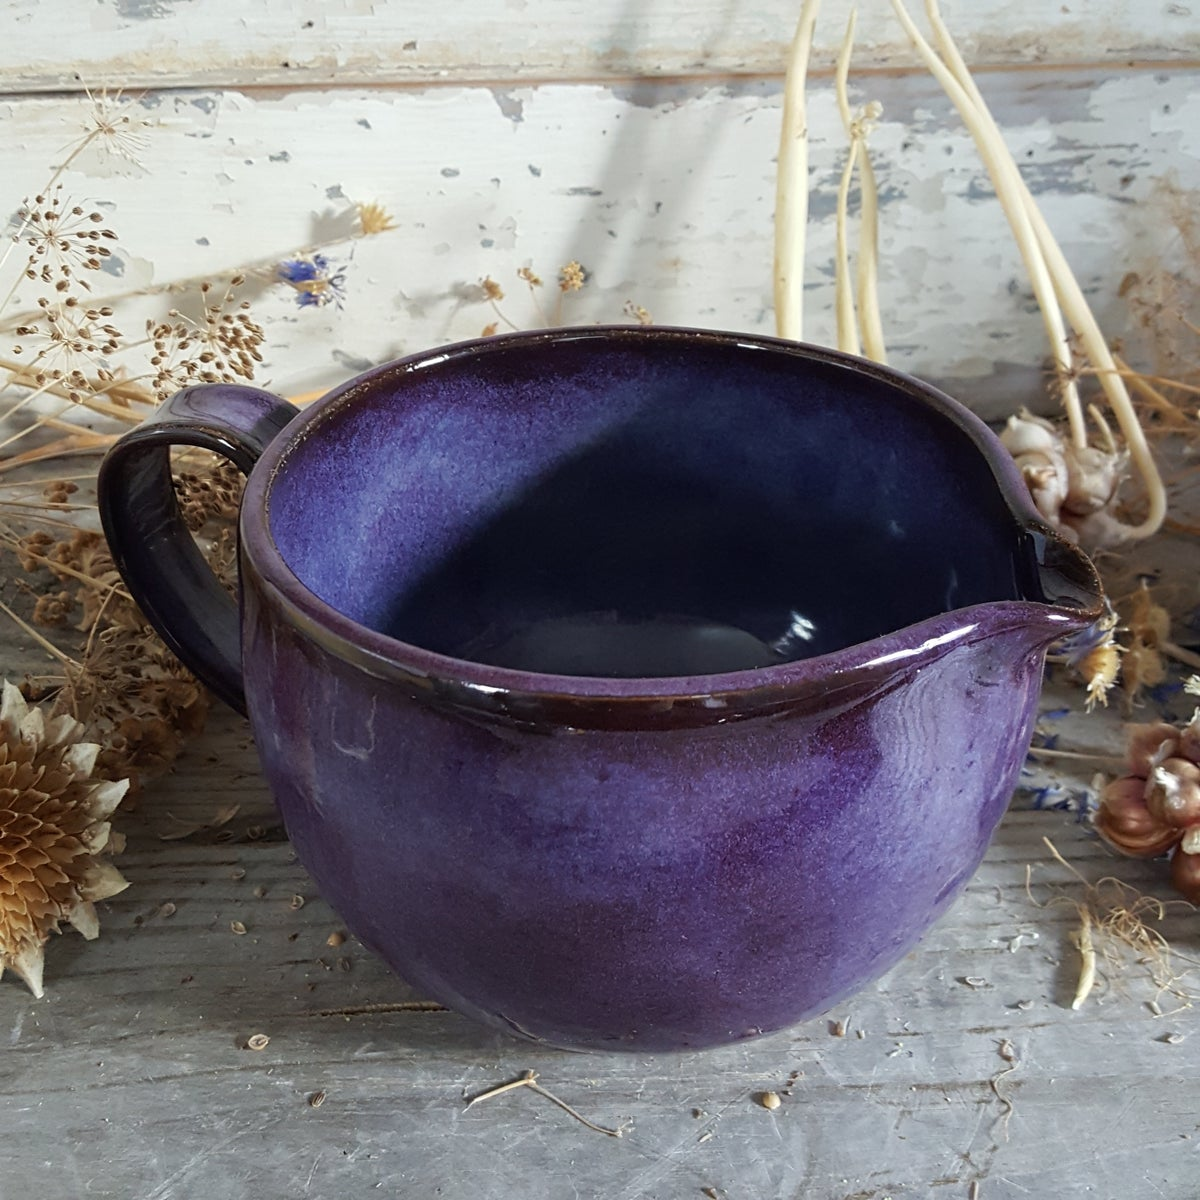 Image of Countertop-worthy Batter Bowl 3 cup: Huckleberry (Purple)